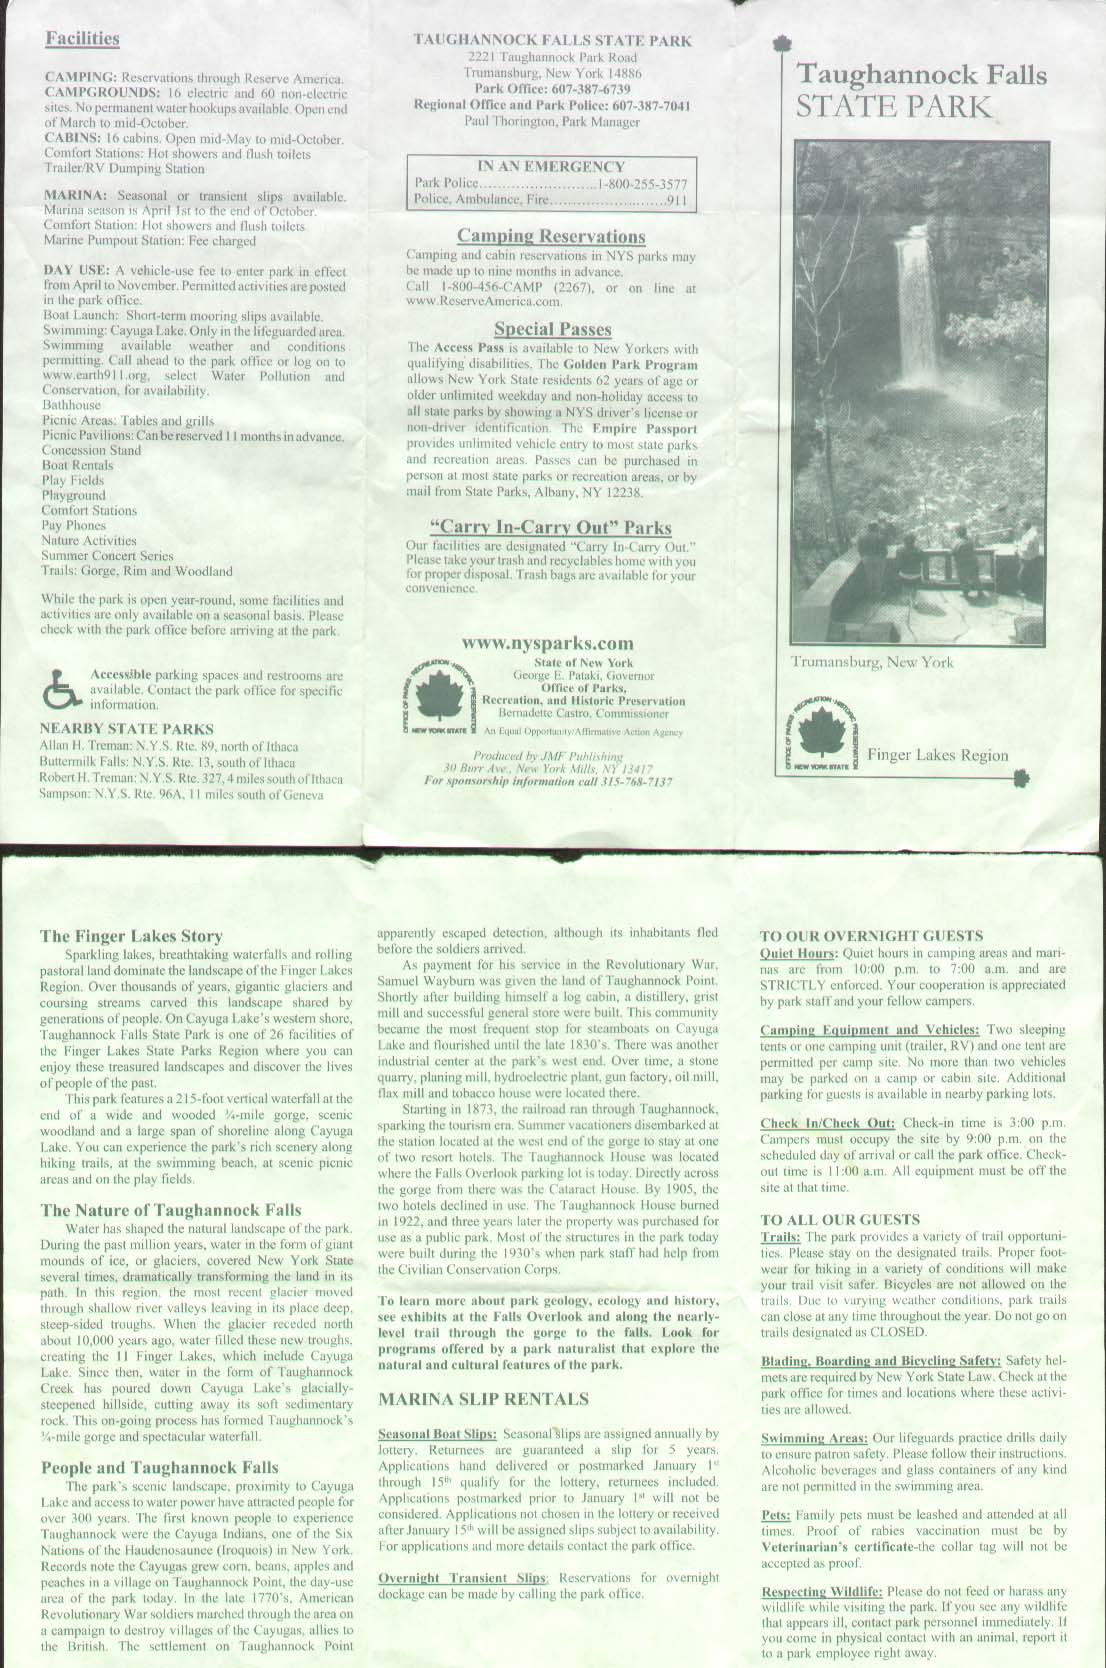 Taughannock Falls State Park Trail Brochure Part 2